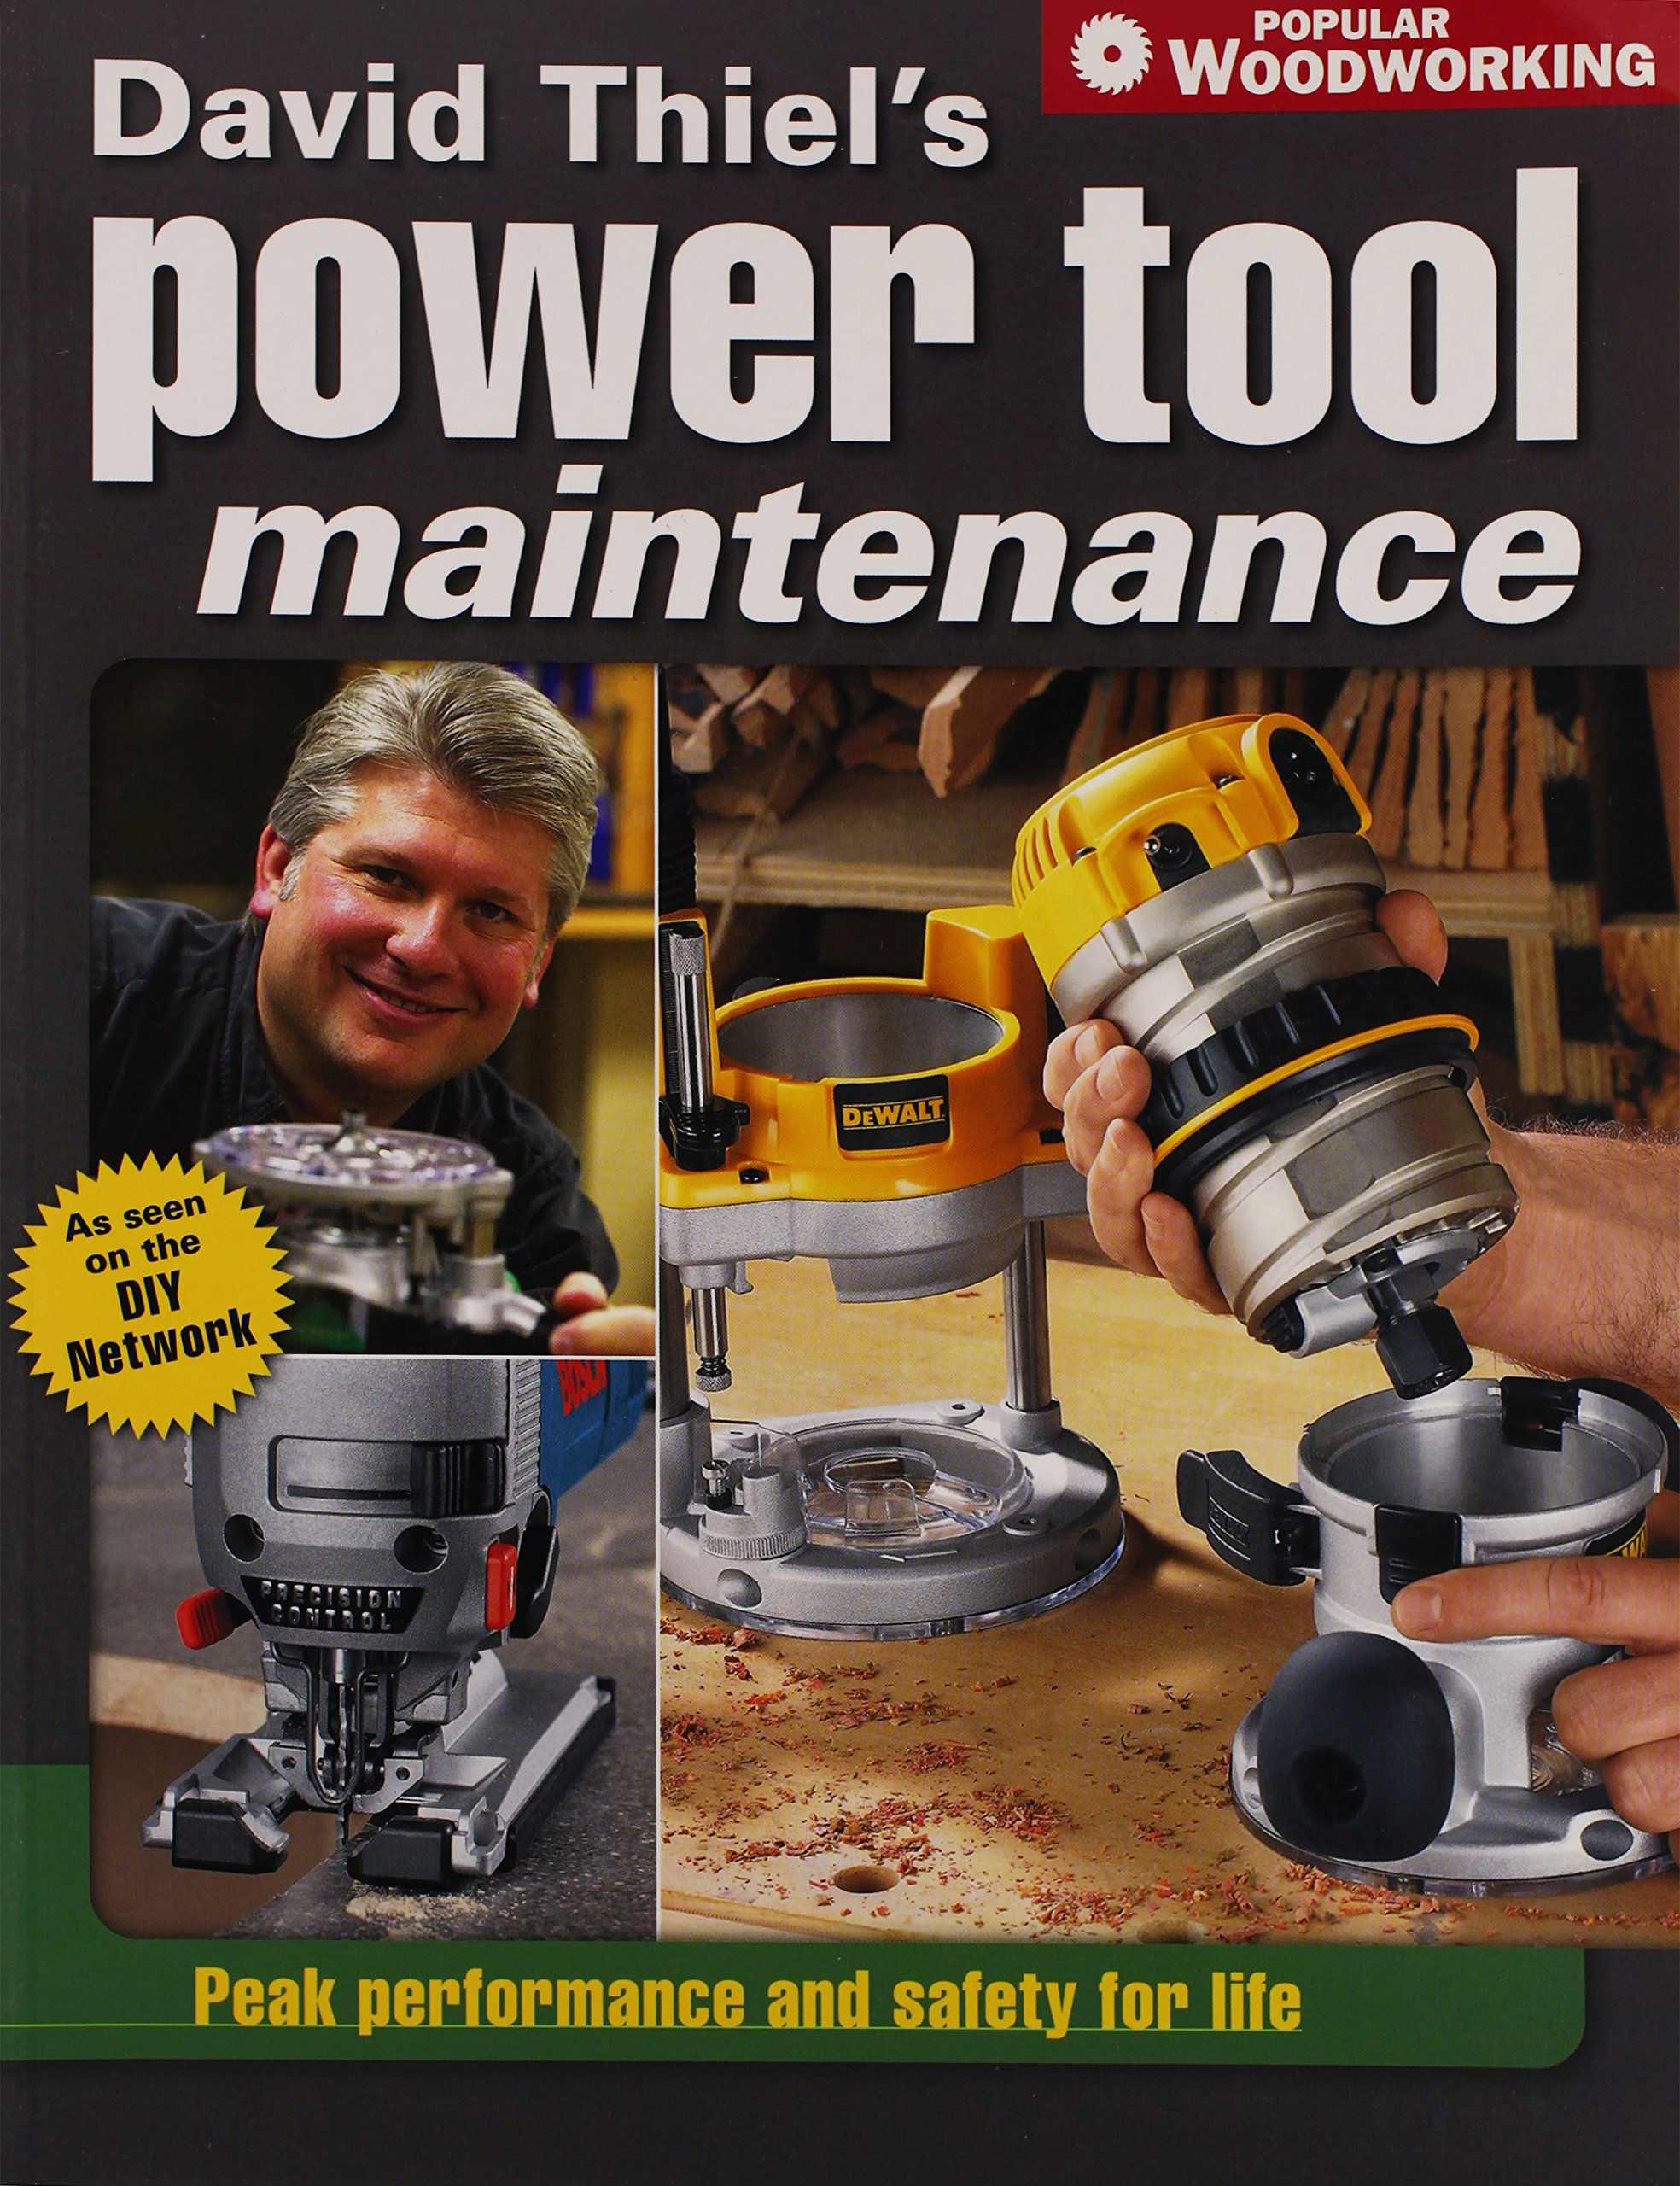 David Thiel's Power Tool Maintenance: Peak Performance and Safety for Life (Popular Woodworking)